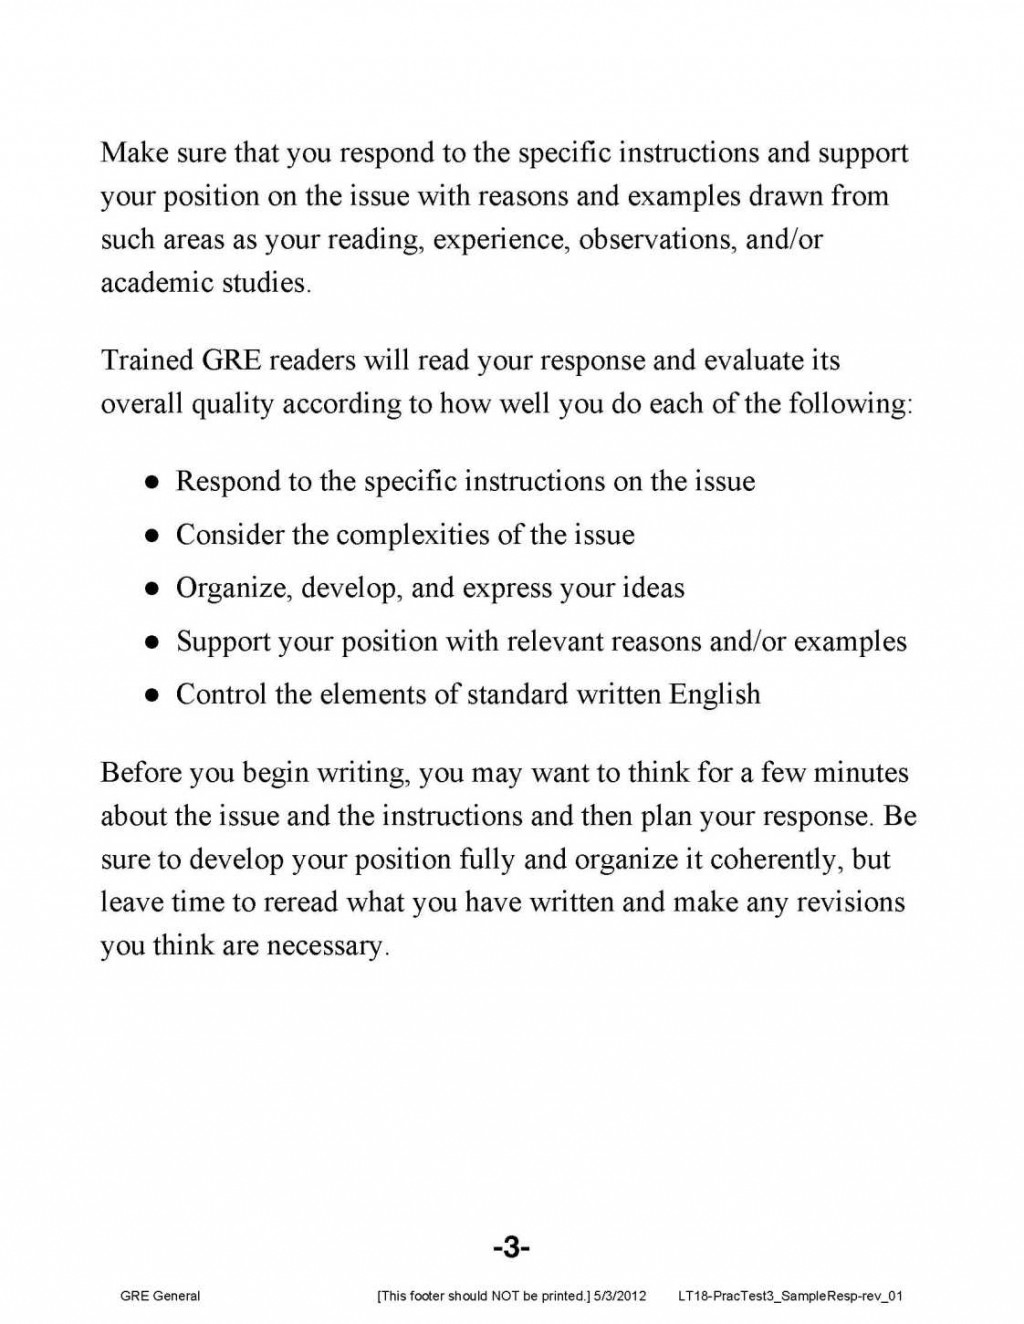 020 Biography Essay Gre Analytical Writing Sample Essays Impressive Conclusion Examples College Titles Large